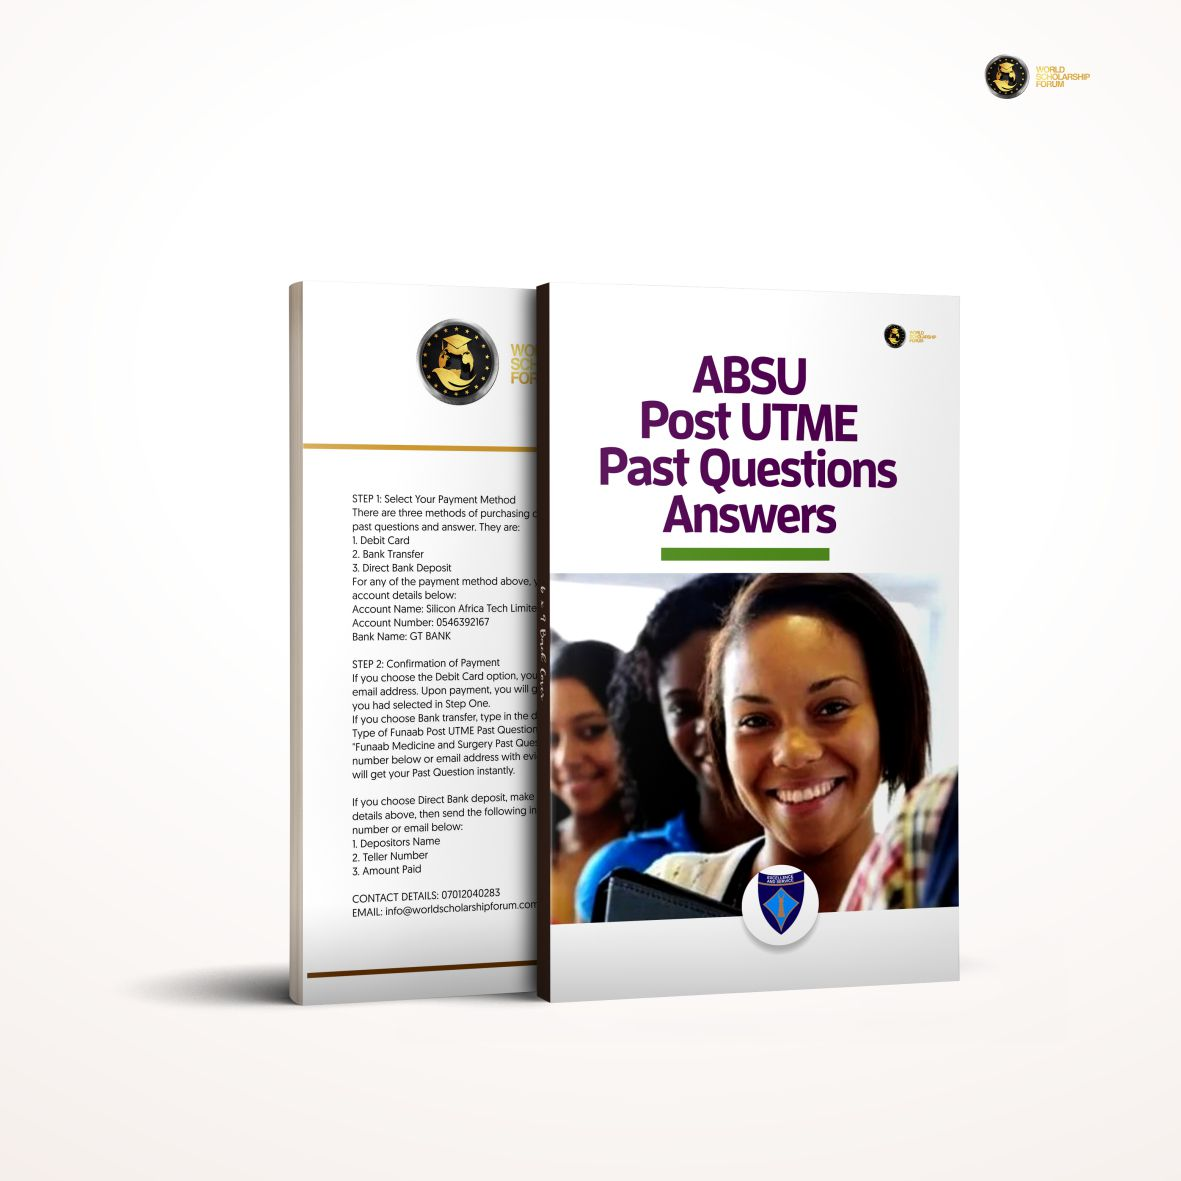 absu-post-utme-question-answers